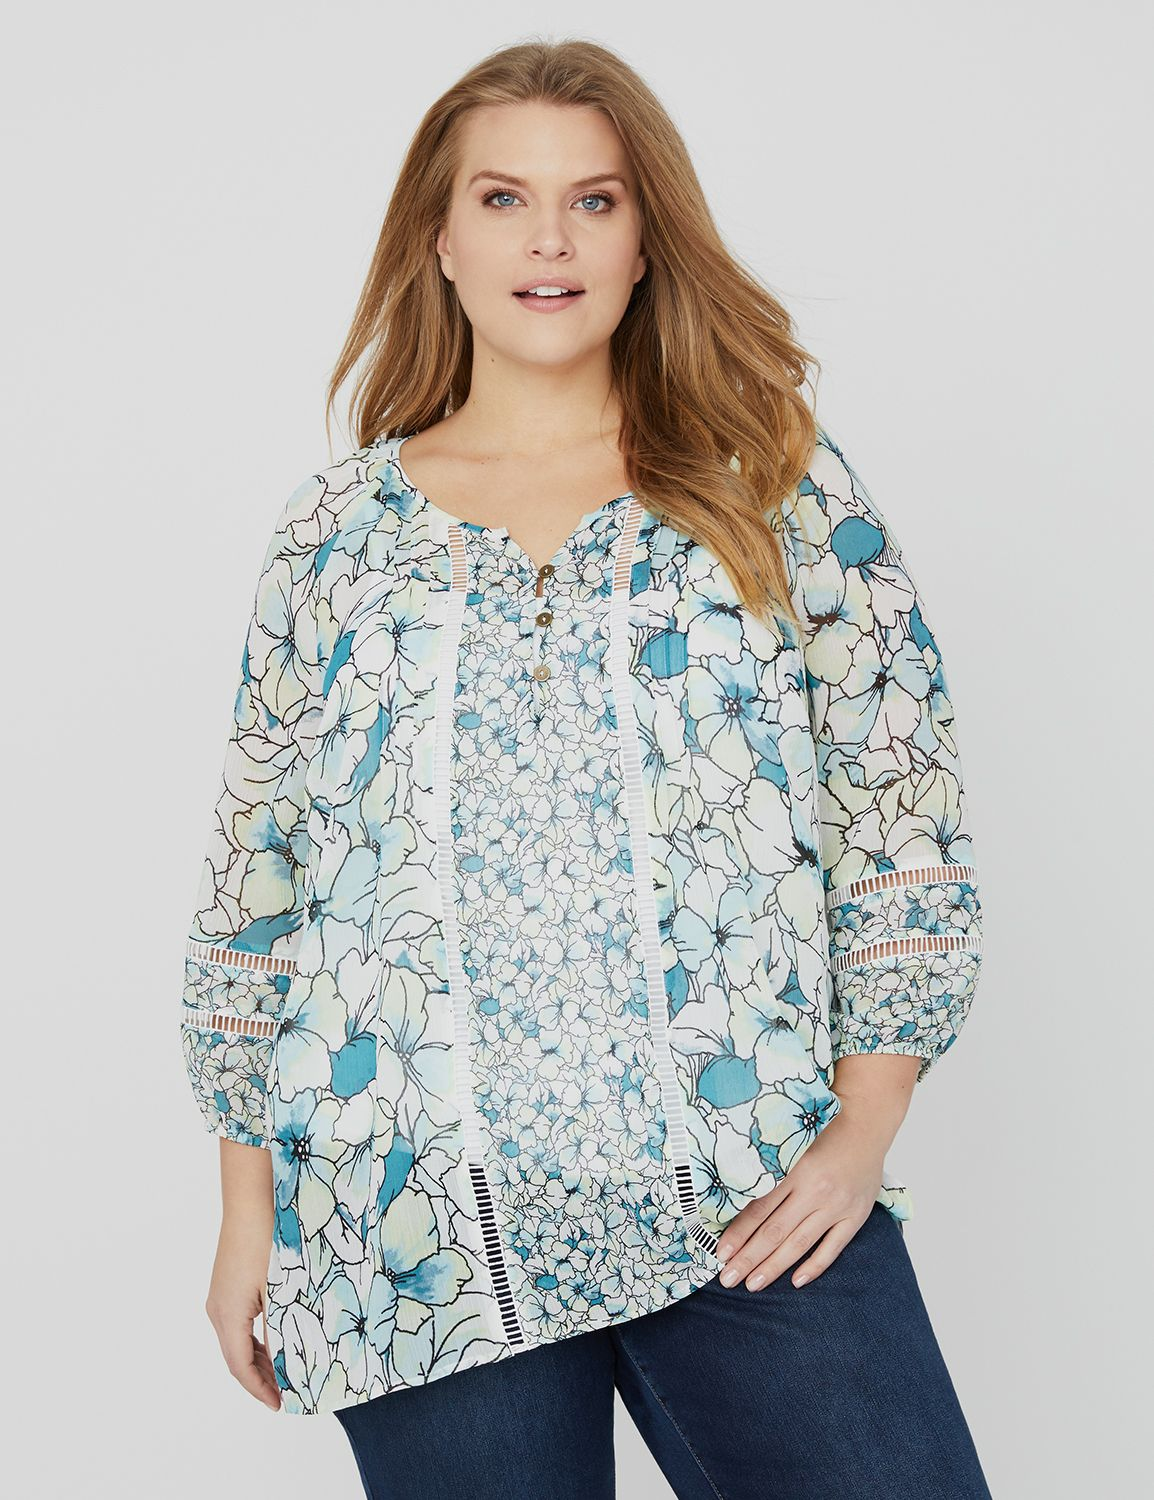 Floral Courtyard Blouse Floral Courtyard Blouse MP-300103604